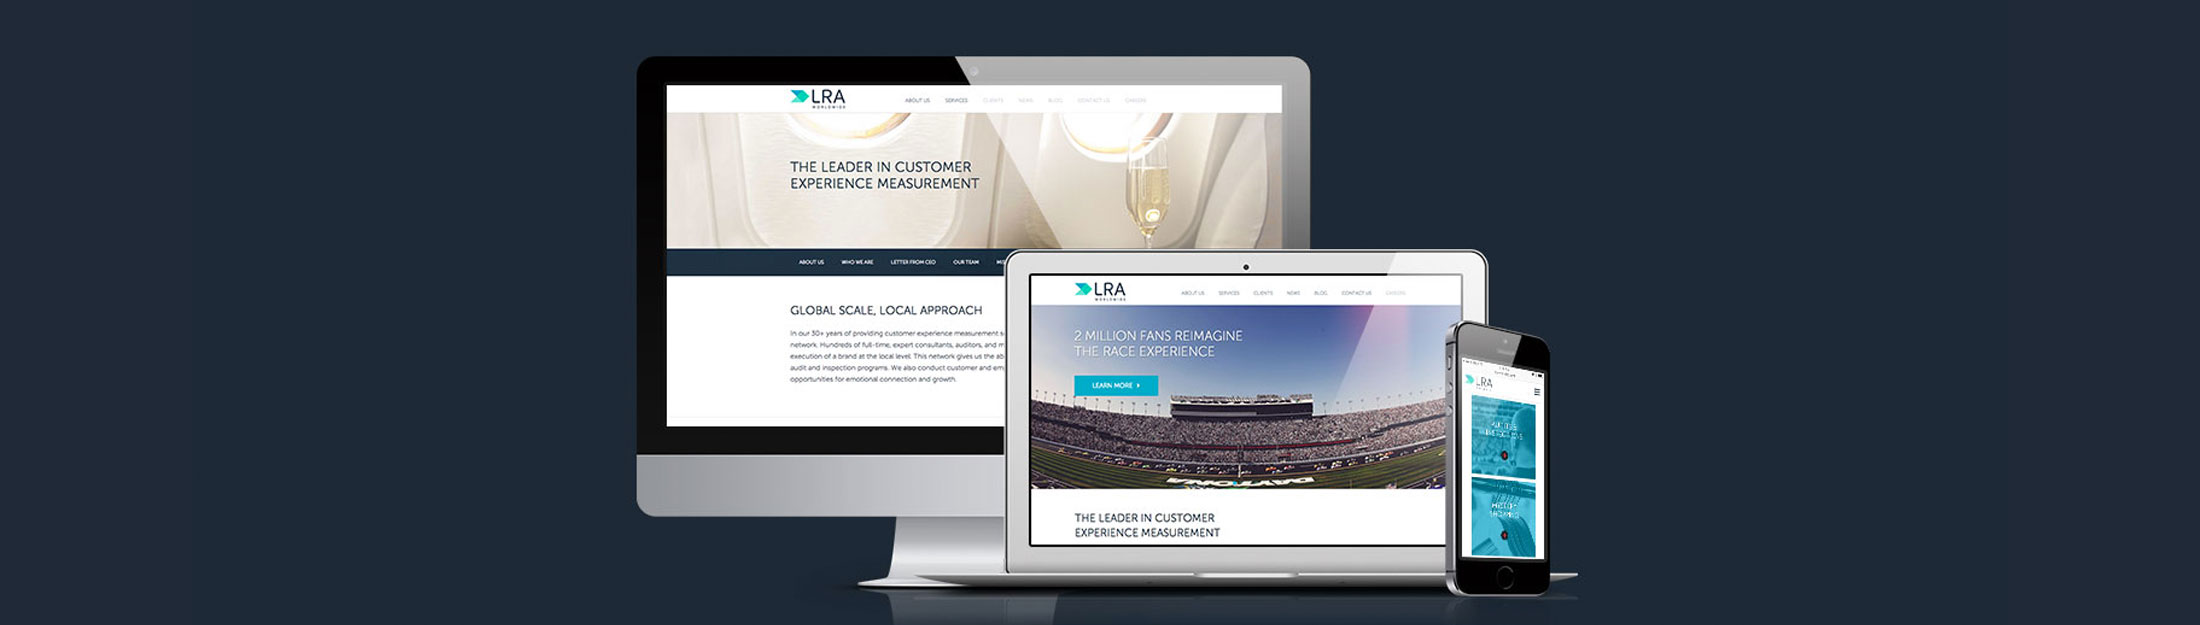 King Design Lra Website On Multiple Devices